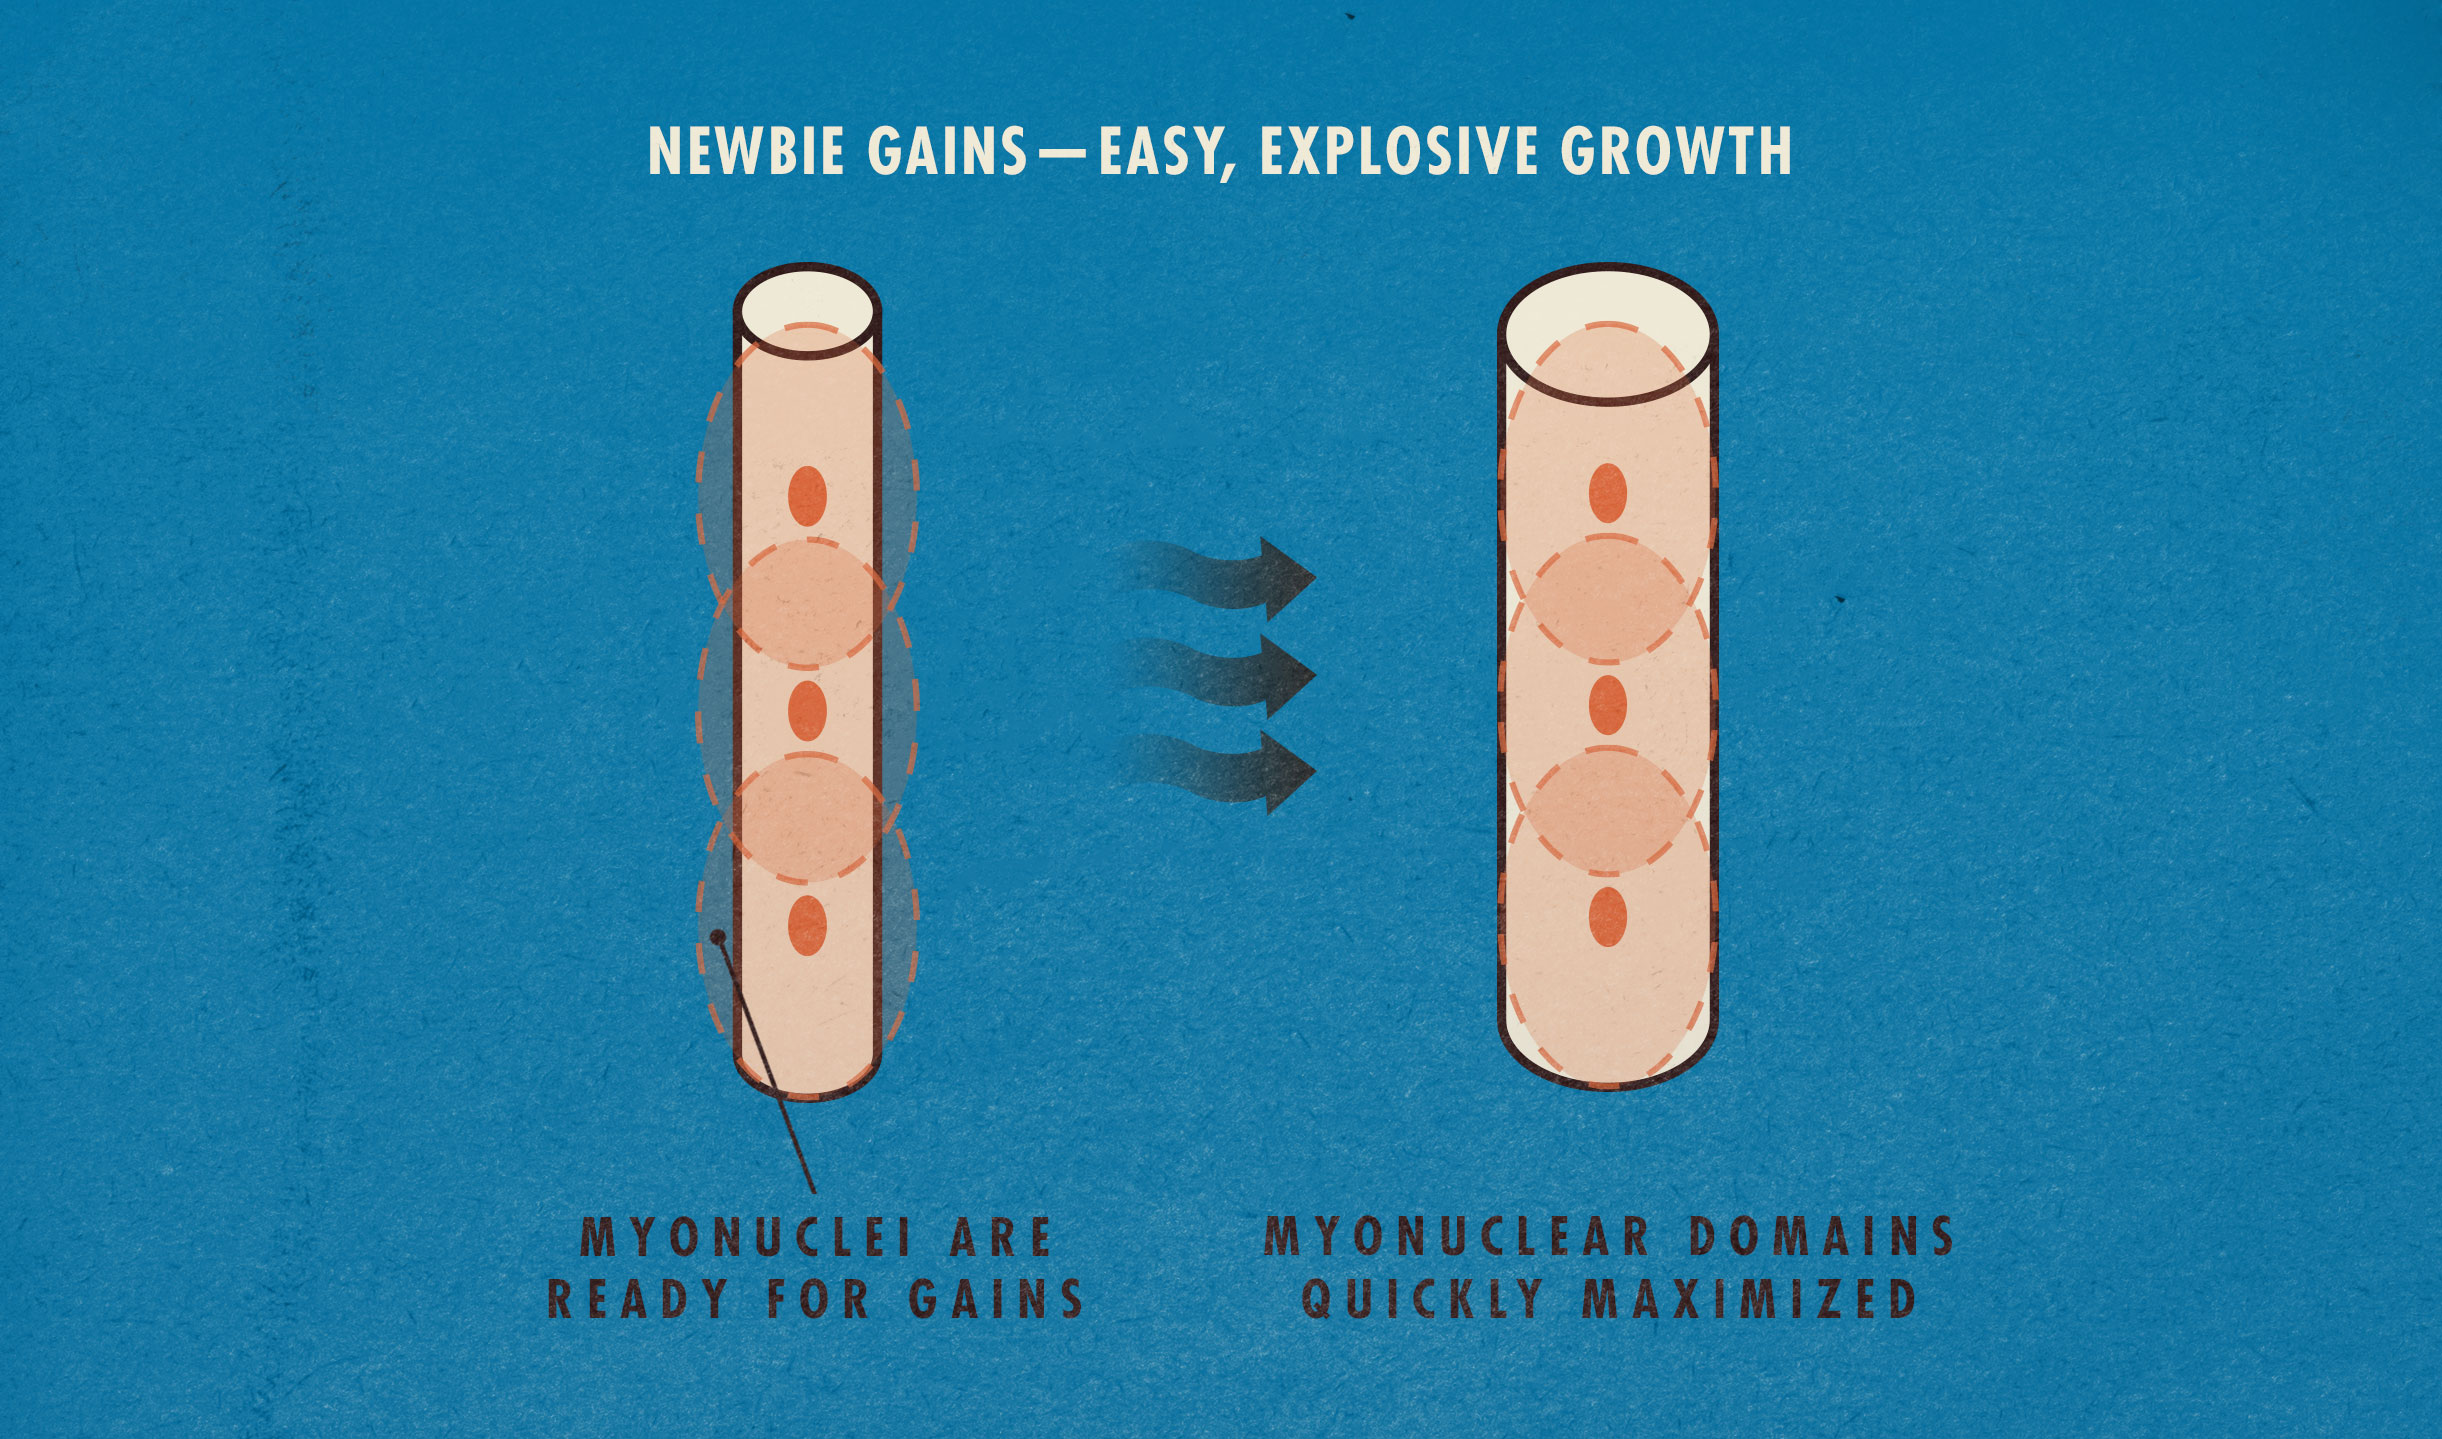 Newbie Gains Diagram